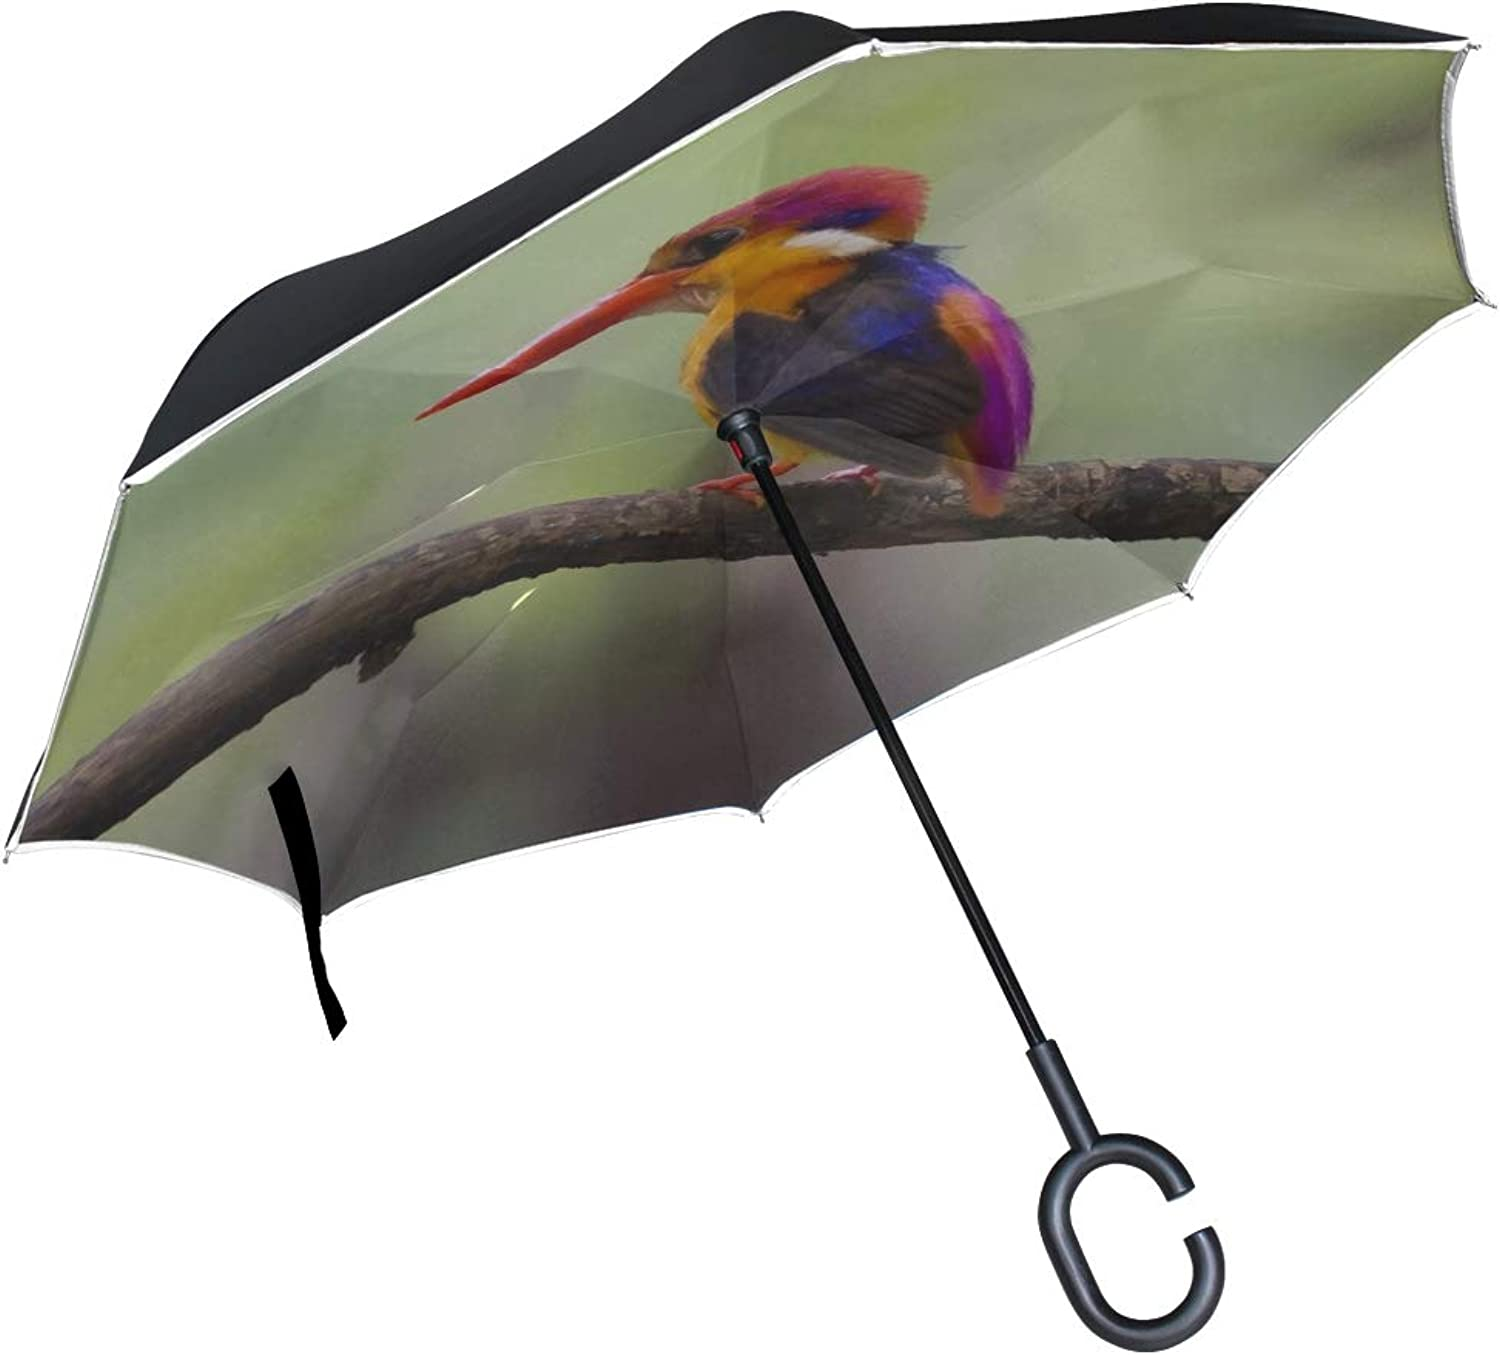 Rh Studio Ingreened Umbrella Bird Beak Branch Large Double Layer Outdoor Rain Sun Car Reversible Umbrella